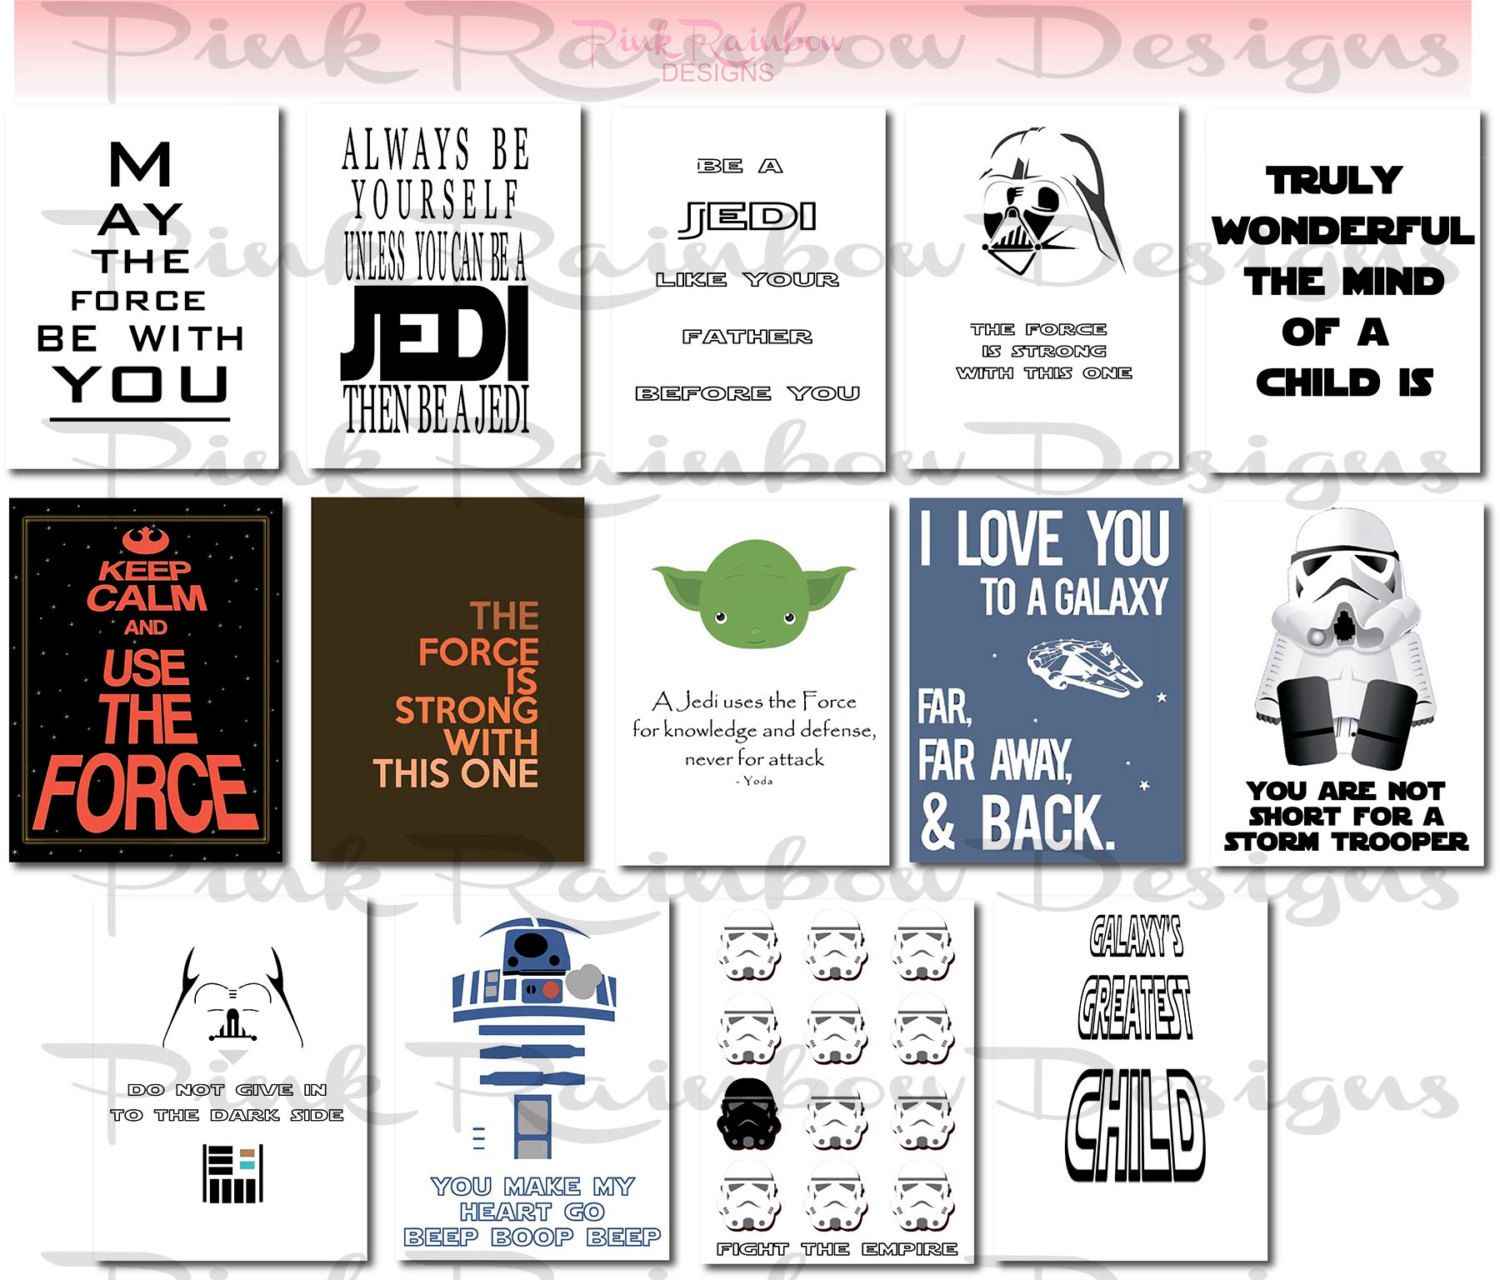 Inspirational Quotes About Loving Children Star Wars Lunch Note Cards  Inspirational  Motivational